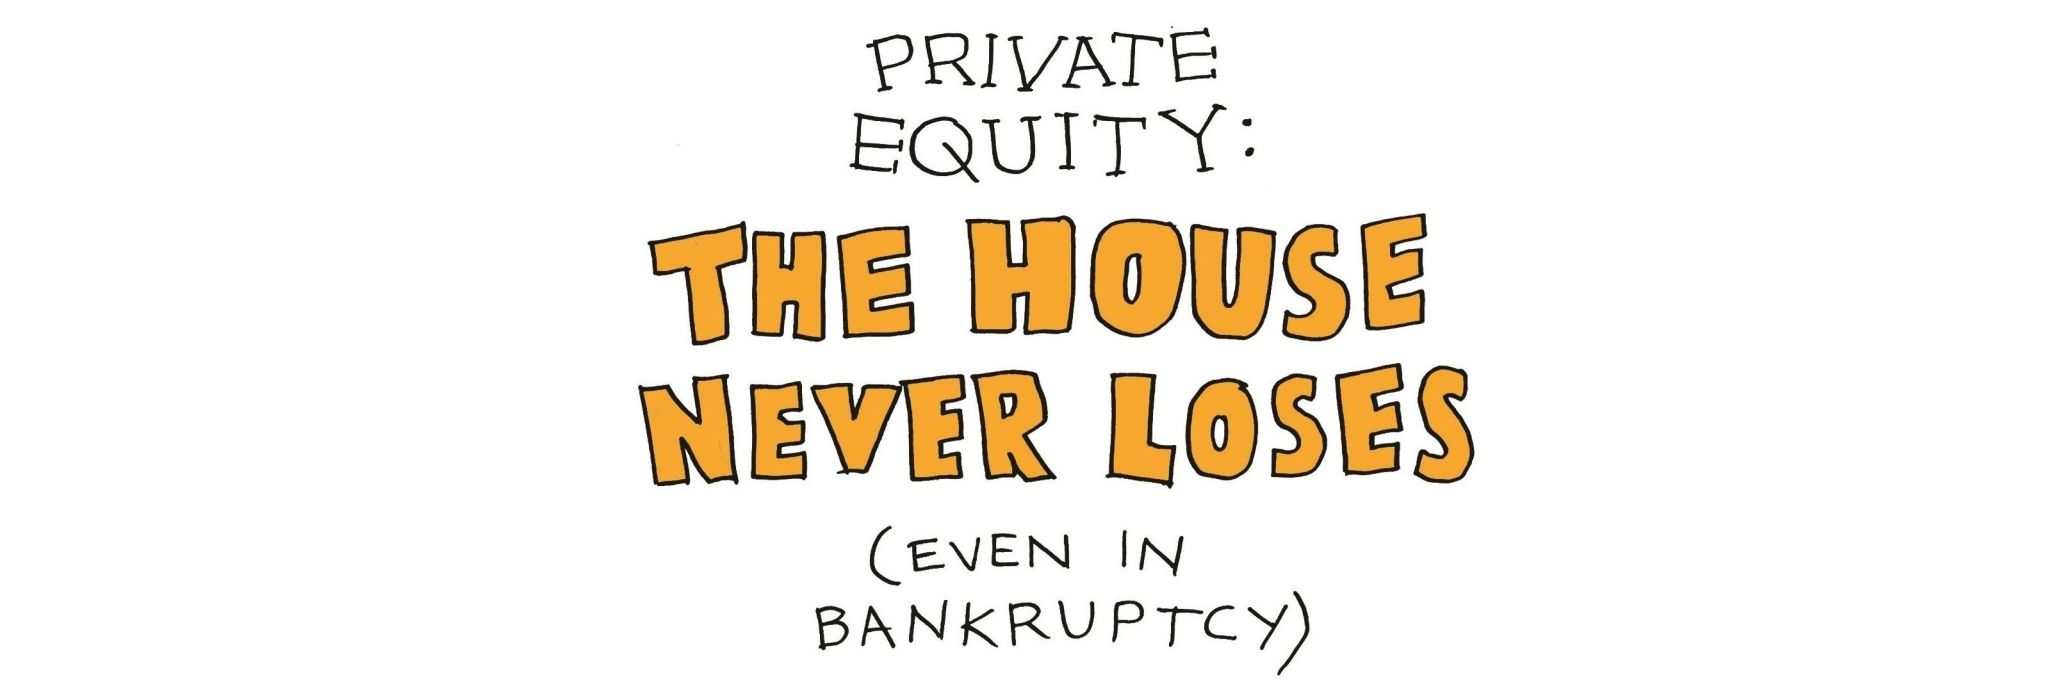 Private Equity Pillage